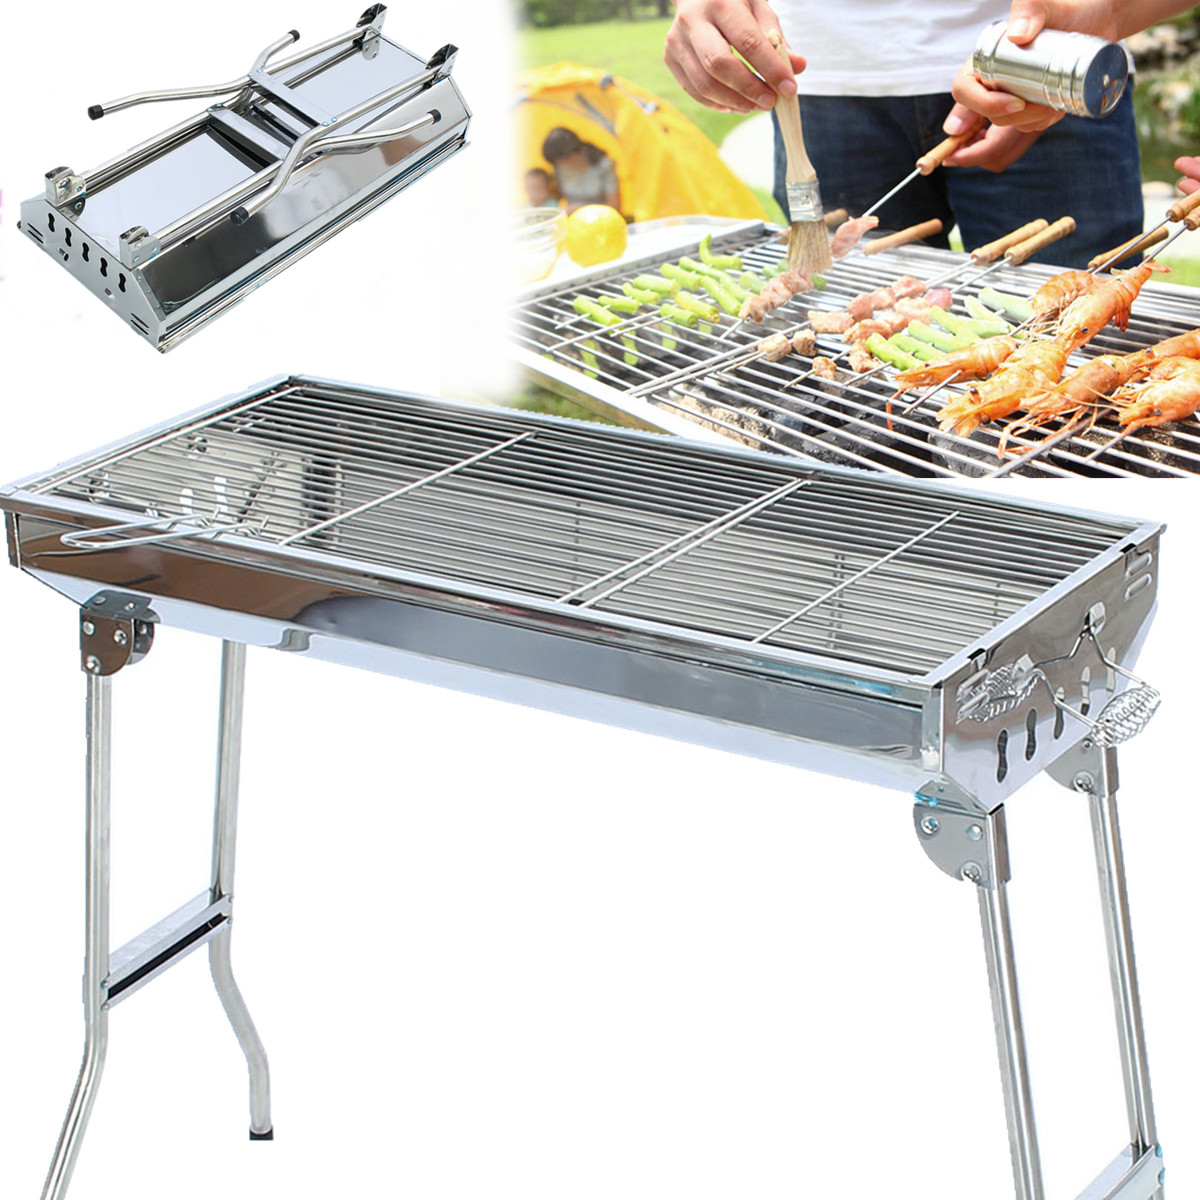 BBQ Grill Stove Stand Foldable Stand Stainless Barbecue Charcoal Grill with camping 2 Nets,2 Handles Outdoor Picnic Camping